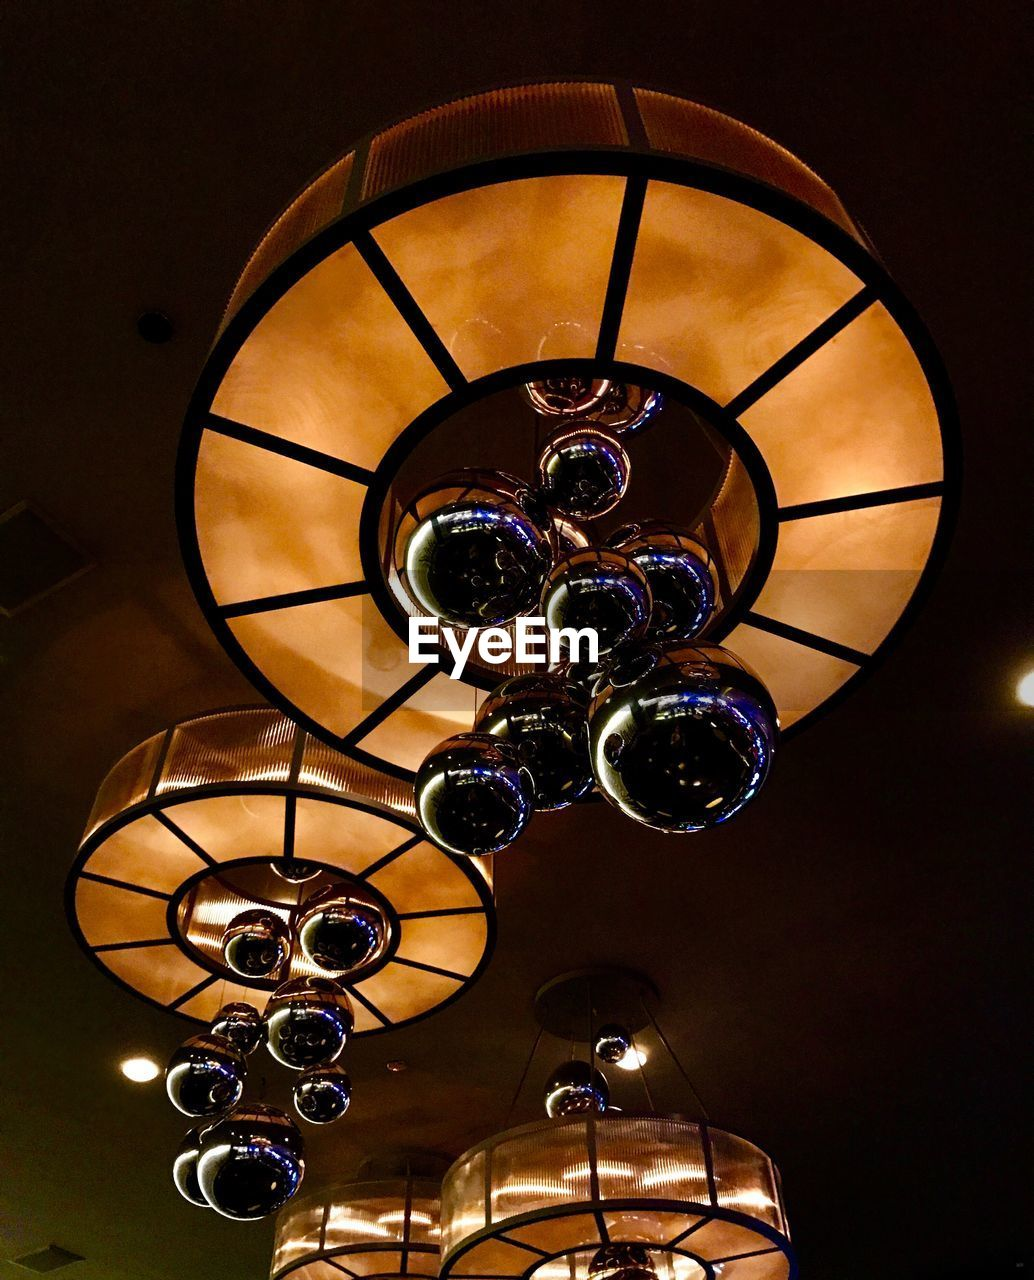 lighting equipment, indoors, ceiling, illuminated, low angle view, hanging, no people, pendant light, decoration, light, design, glowing, home interior, chandelier, electric lamp, wall - building feature, electricity, electric light, pattern, close-up, luxury, light fixture, ornate